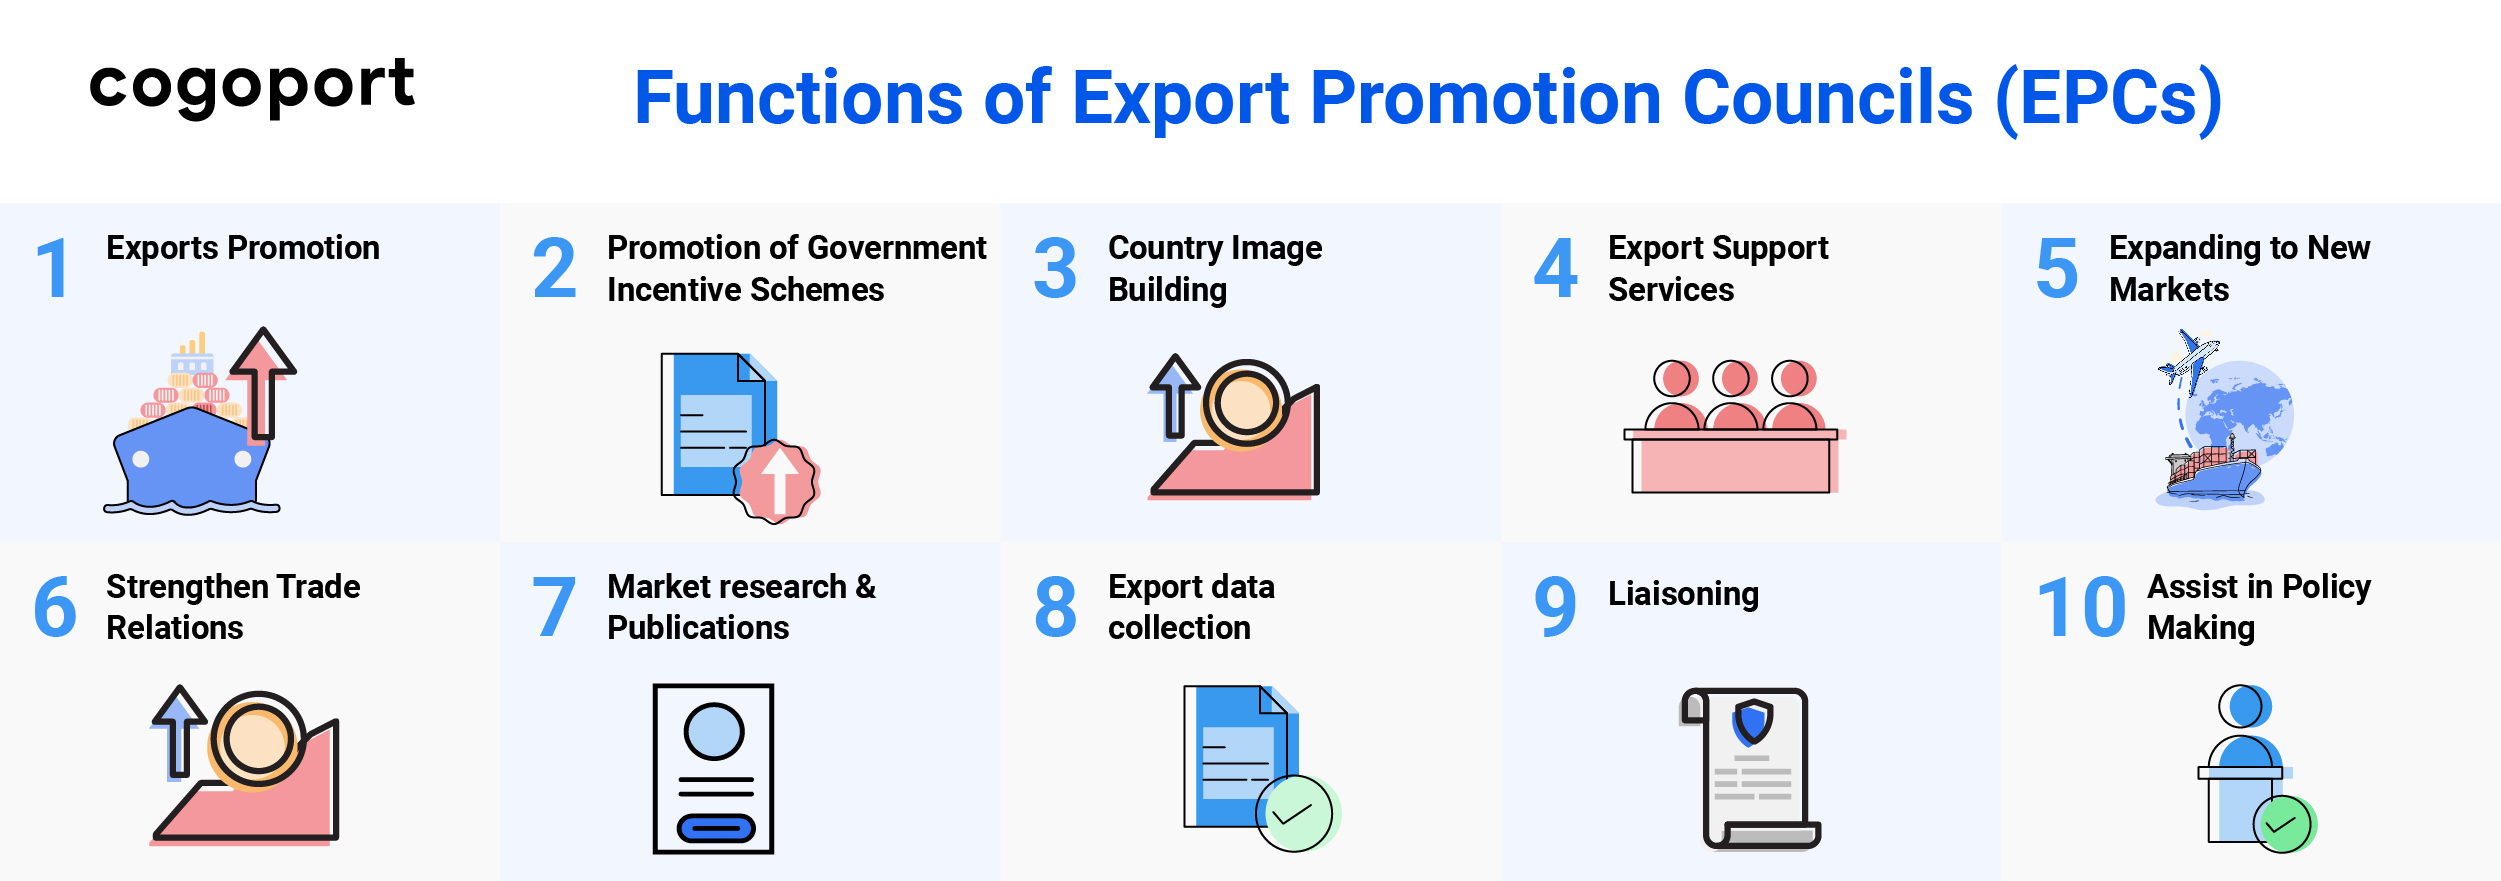 Functions of Export Promotion Councils (EPCs)